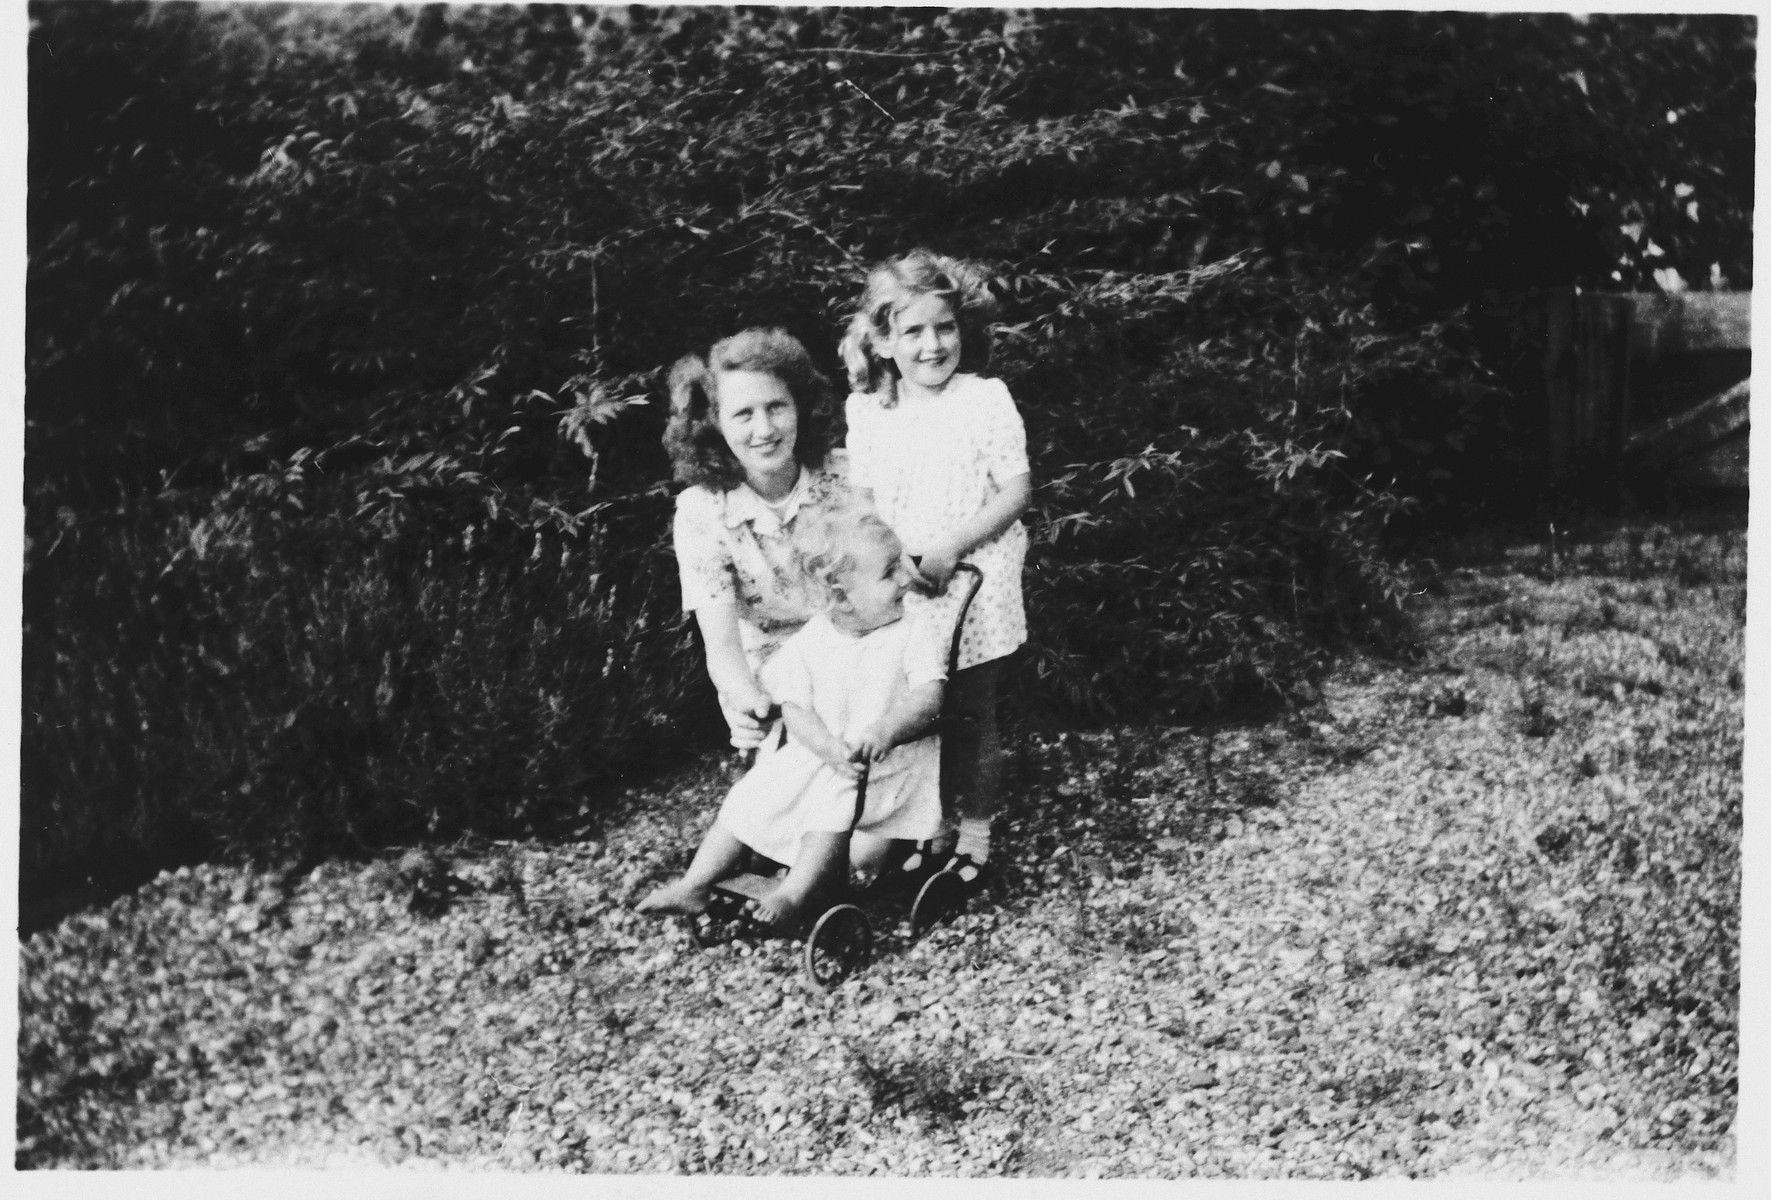 Polly Hertz plays with her rescuers' children, Liberta (b. 1945) and Marjolein (b. 1941), on a return visit to the family in 1946.